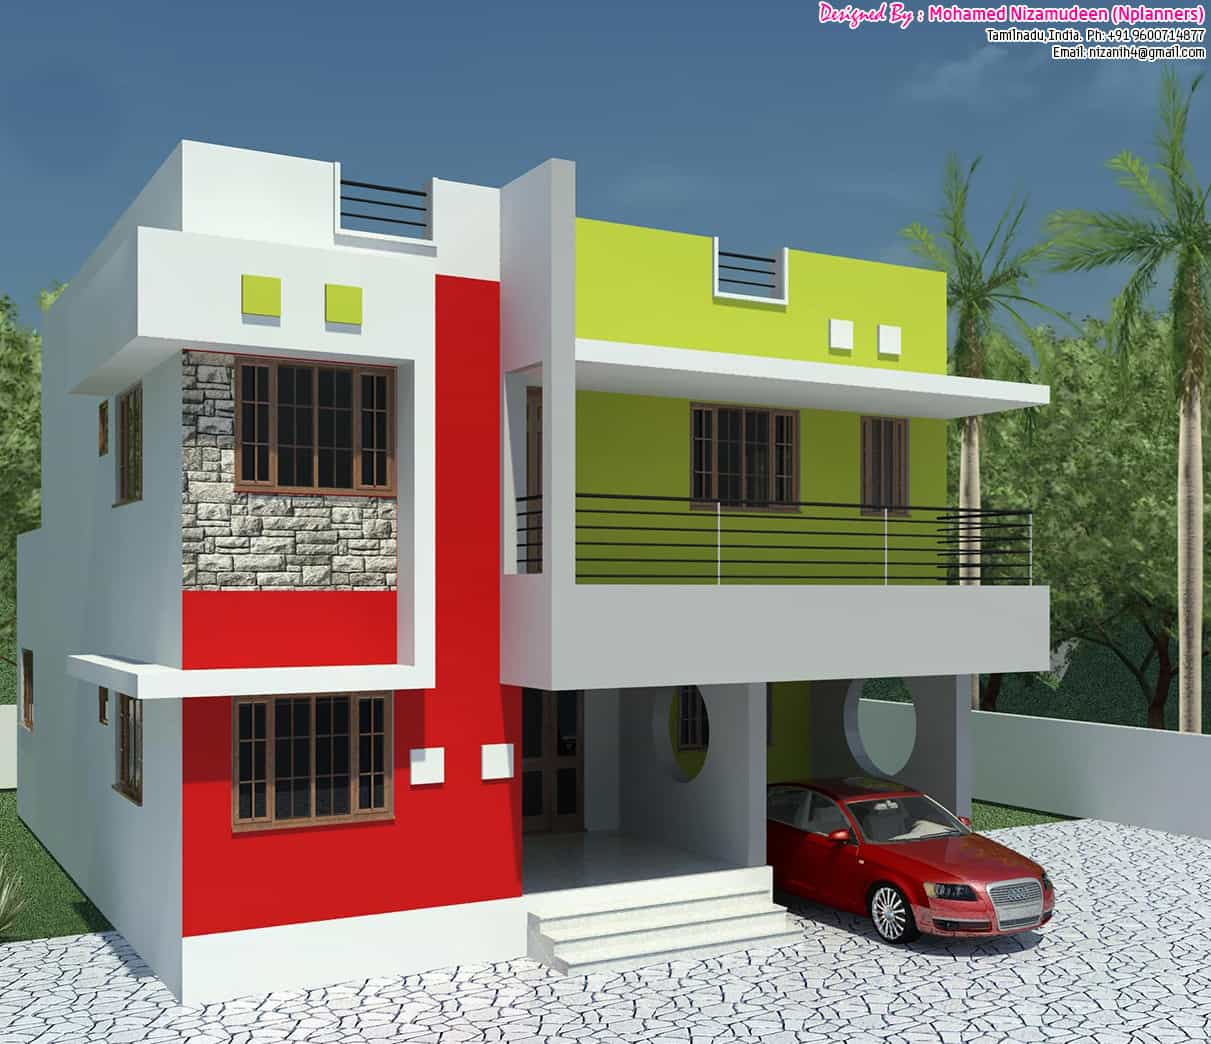 Affordable basic 3bhk home design at 1300 for Basic house design